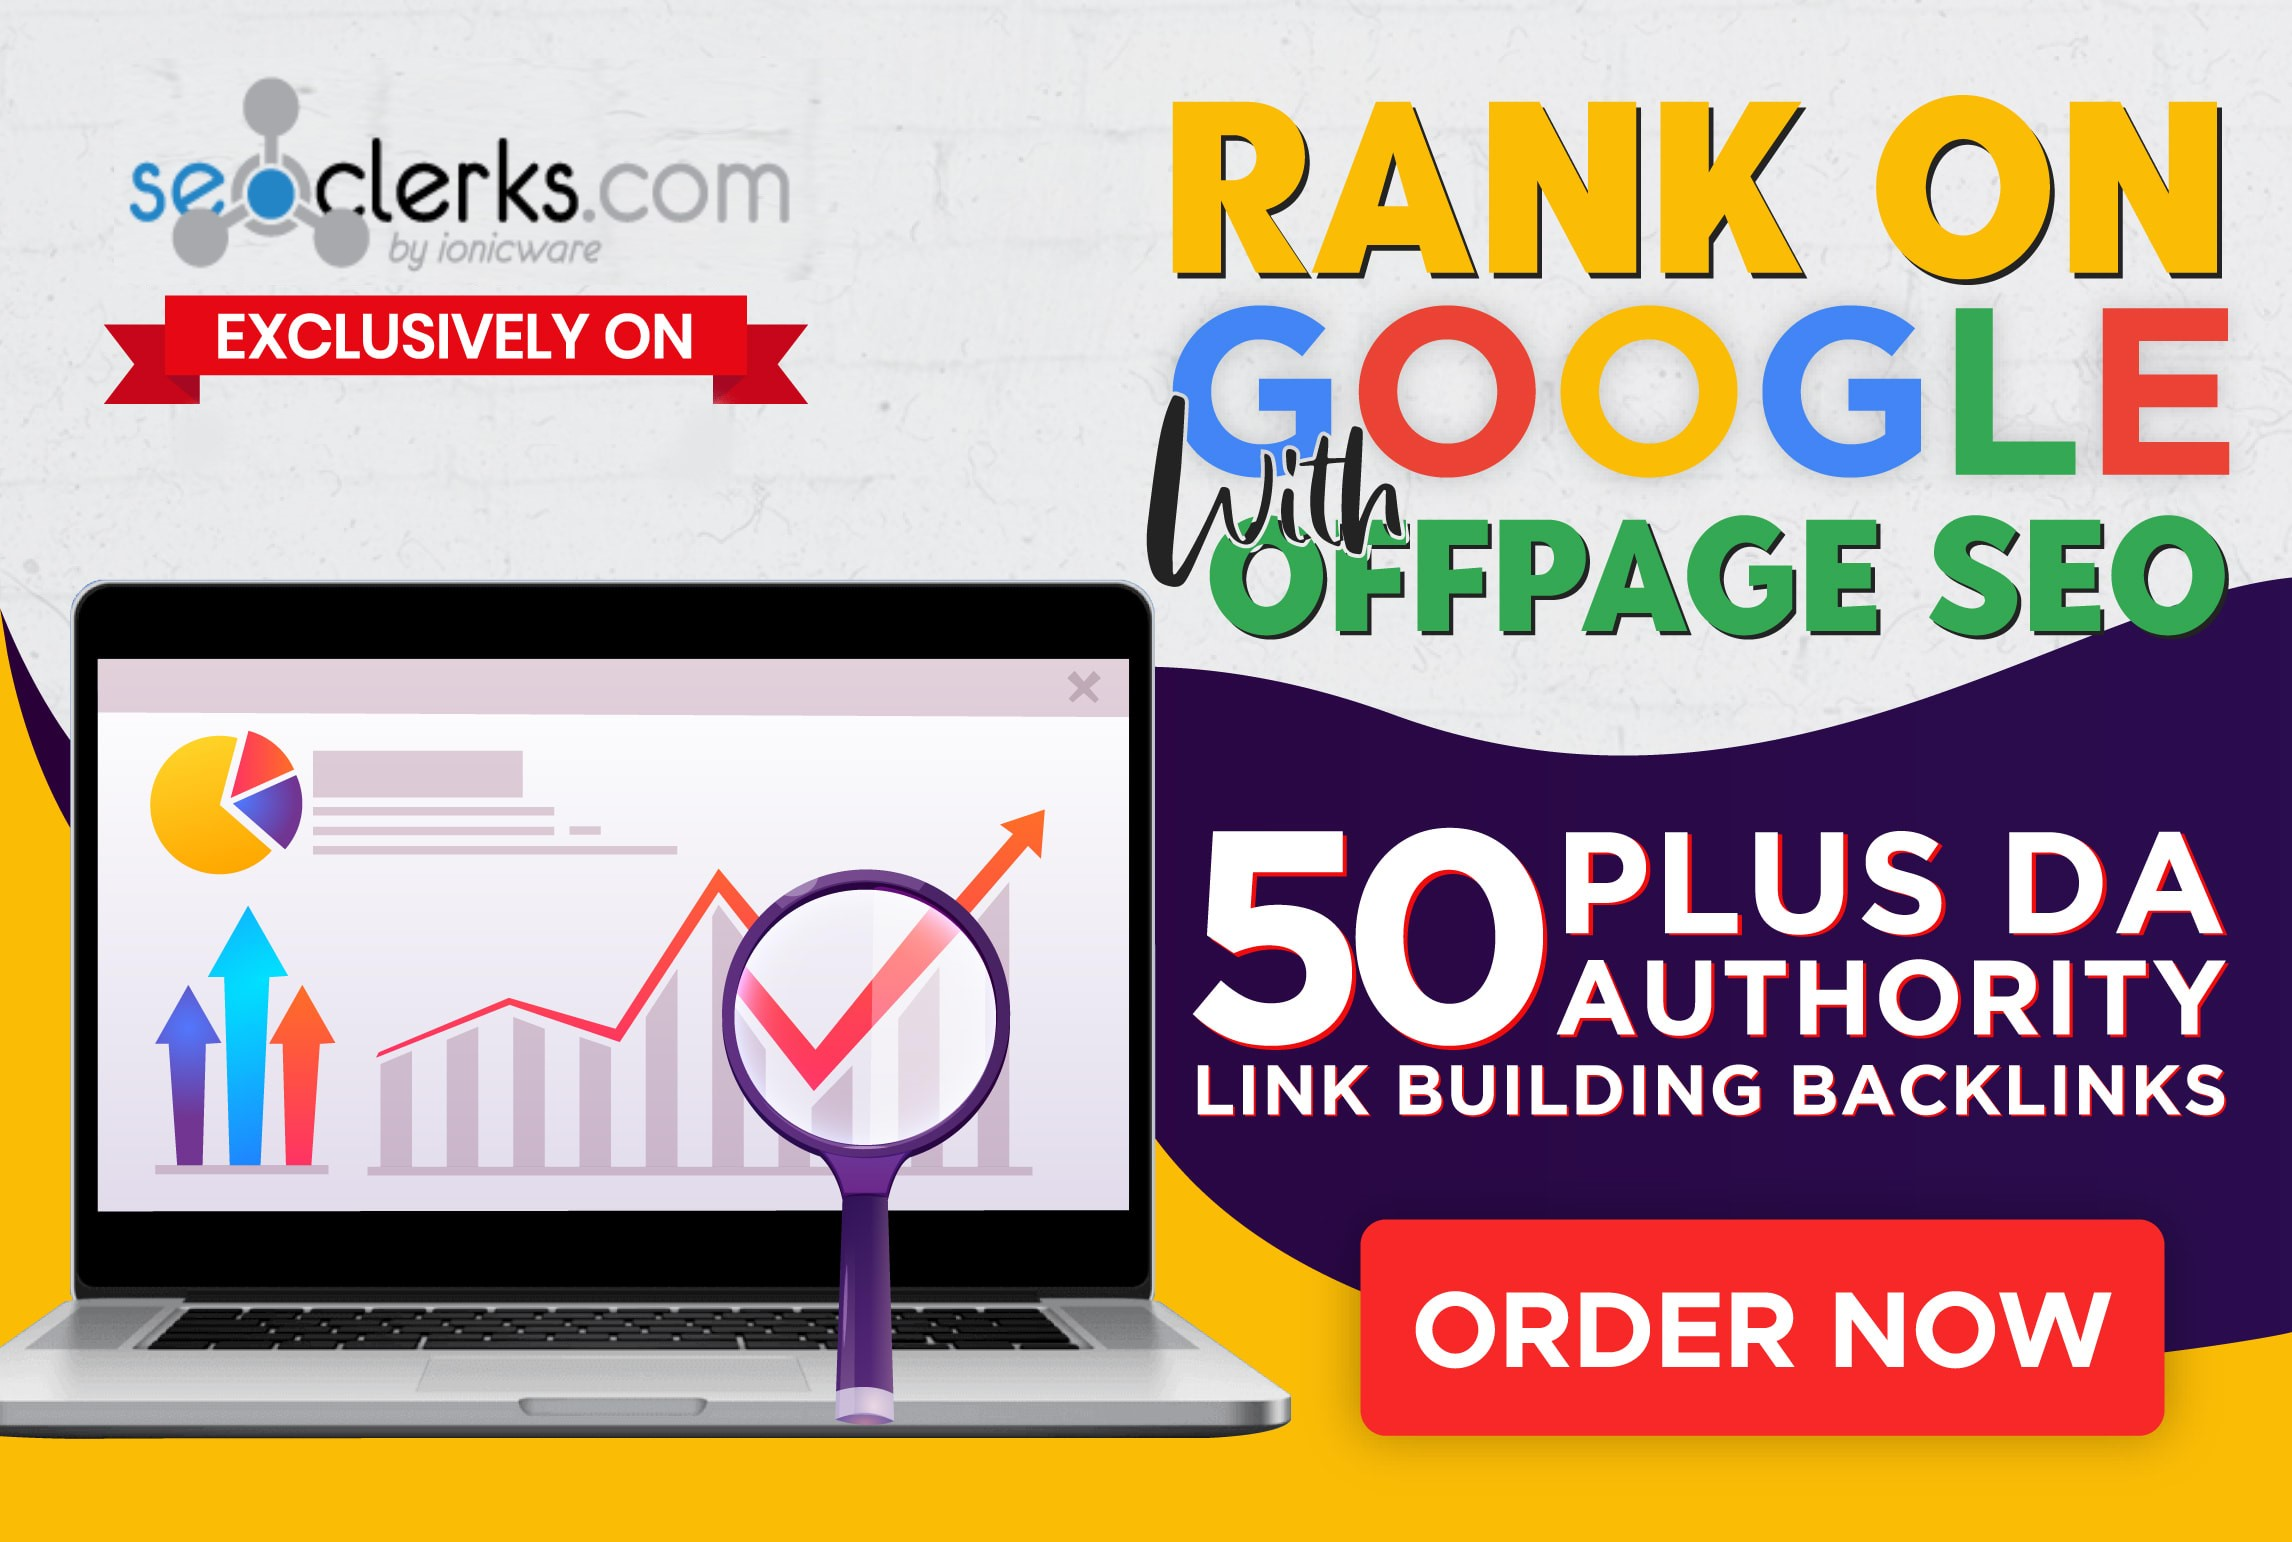 I Will Rank on Google With 100 Off Page SEO DA 50+ link Building Backlinks